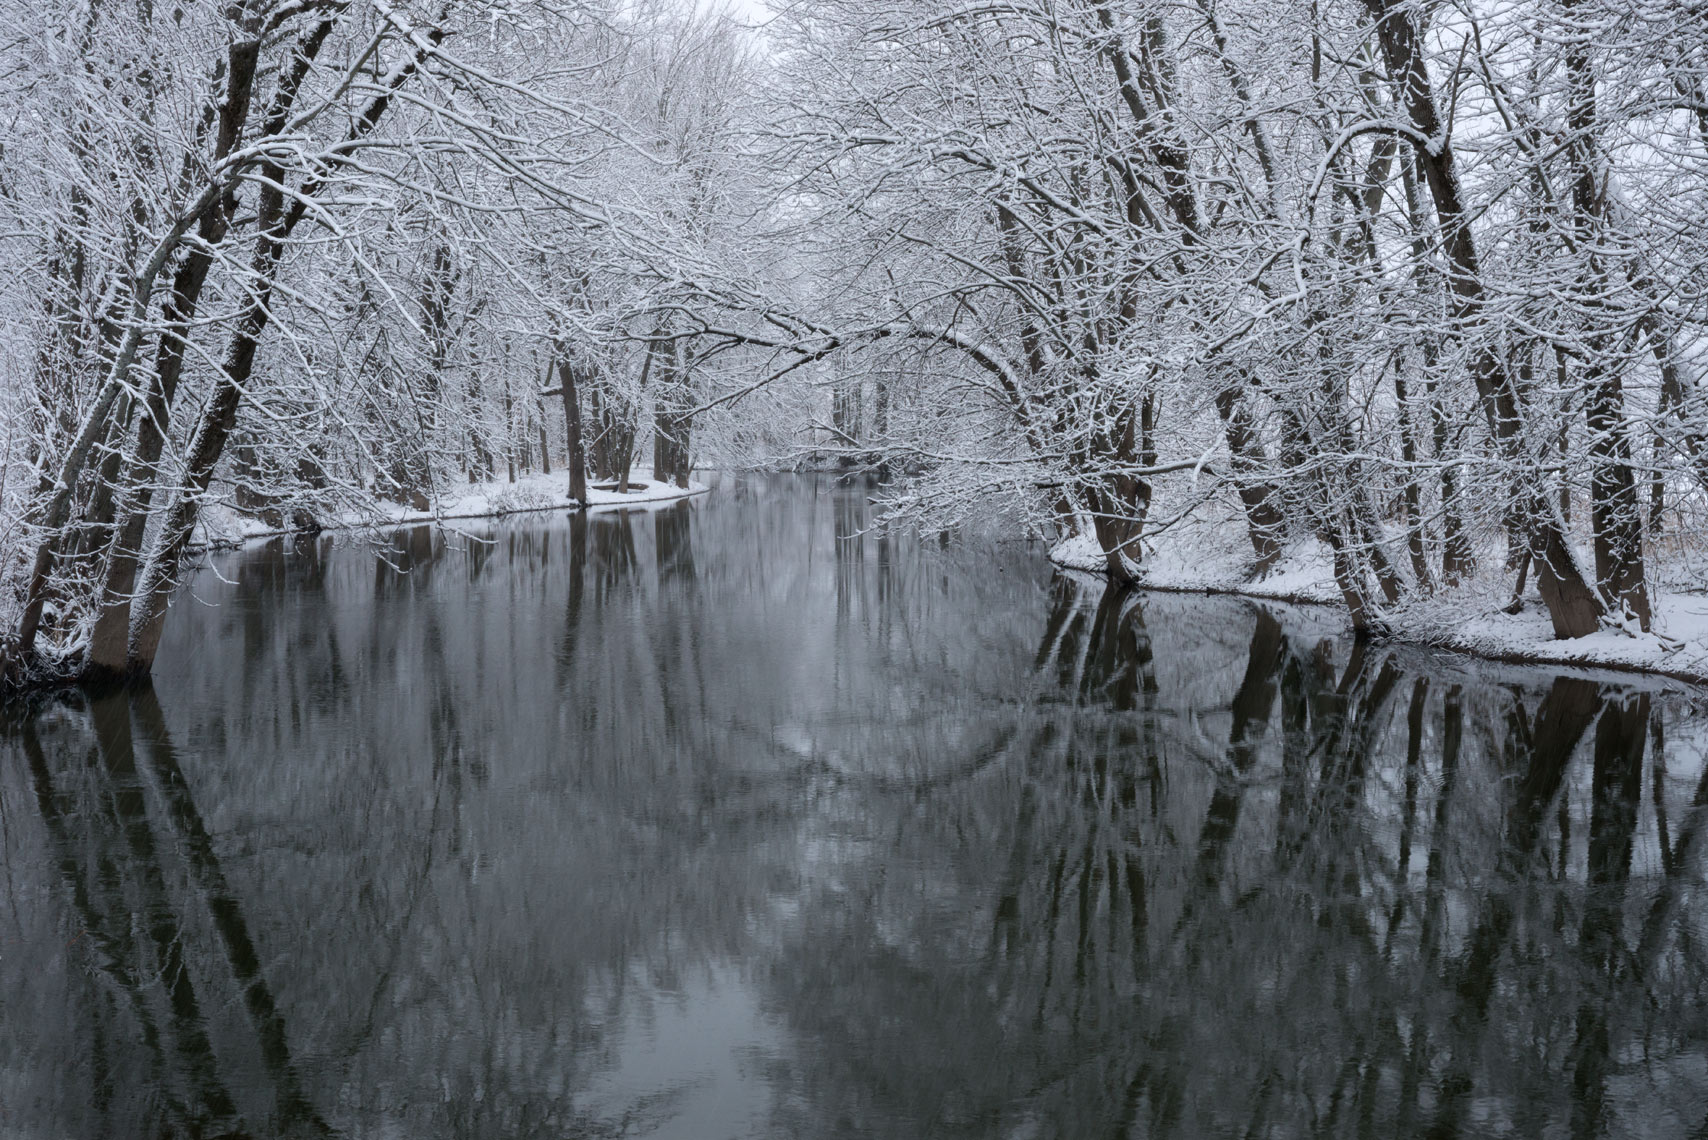 Snow Covered Trees along Chittenango Creek